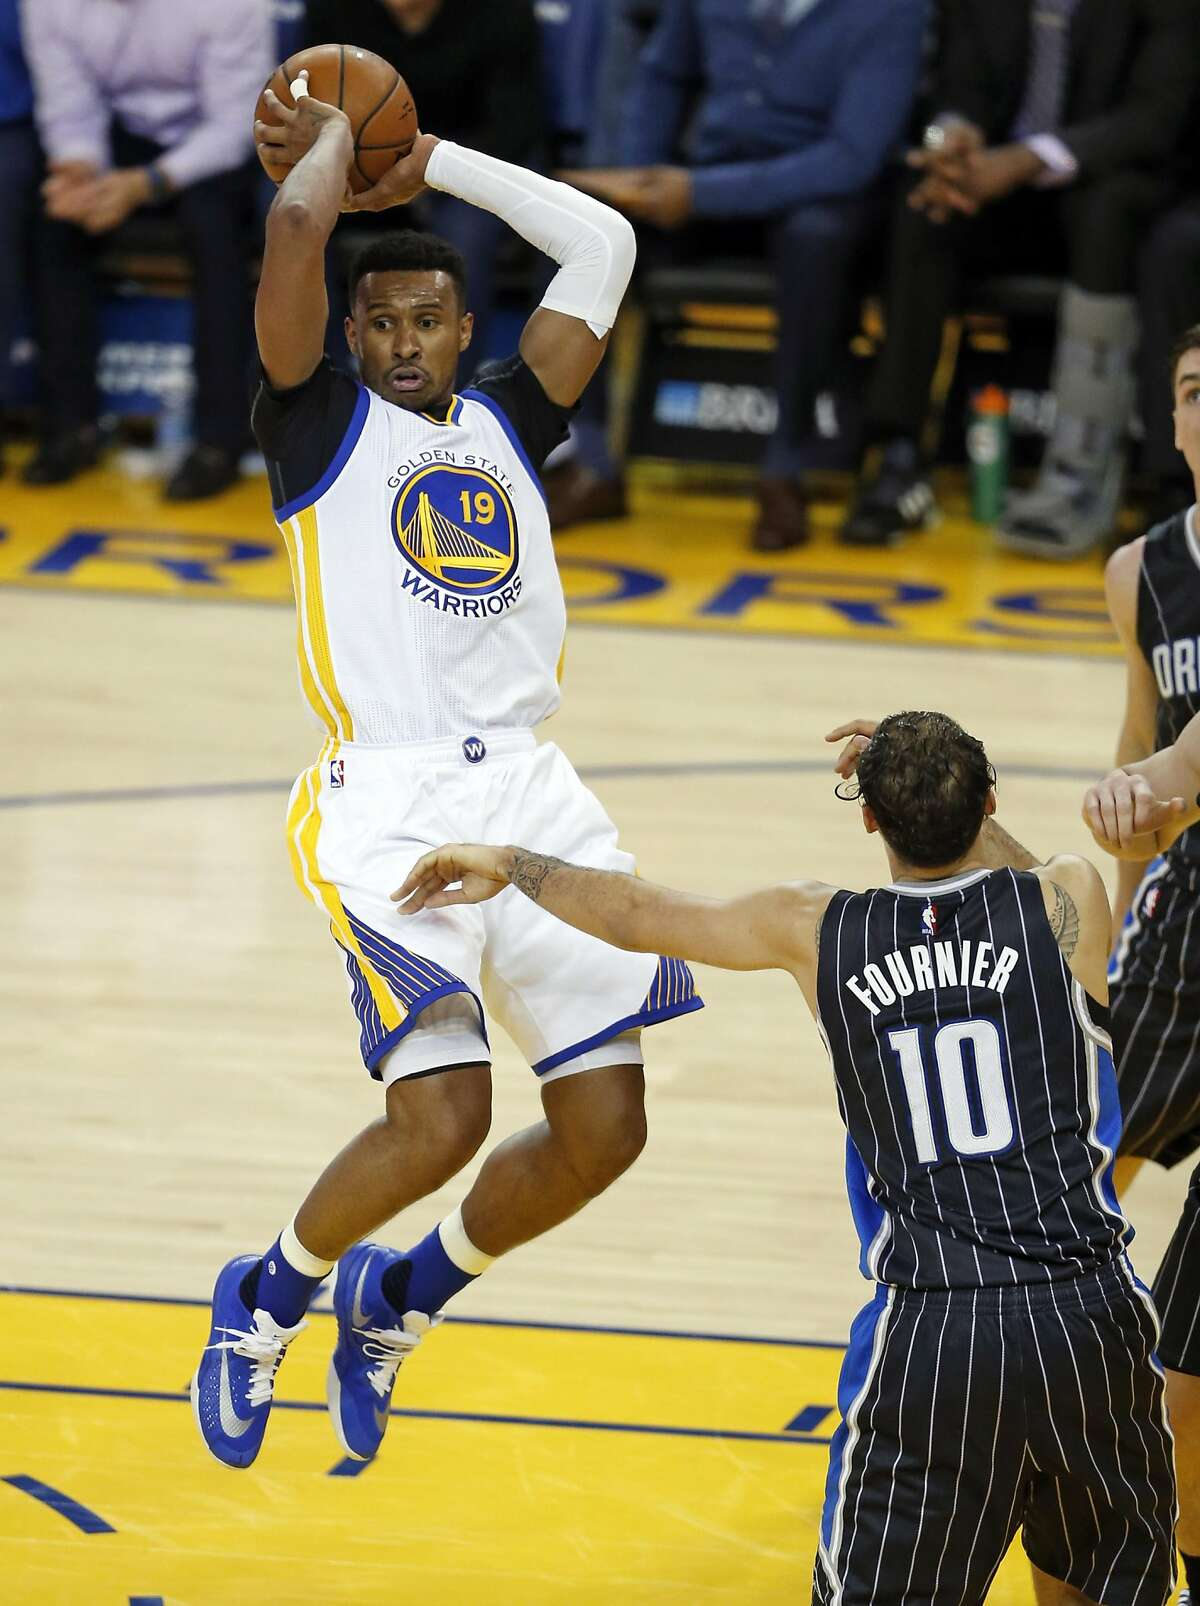 Golden State Warriors' Leandro Barbosa passes against Orlando Magic's Evan Fournier in 3rd quarter during NBA game at Oracle Arena in Oakland, Calif., on Monday, March 7, 2016.